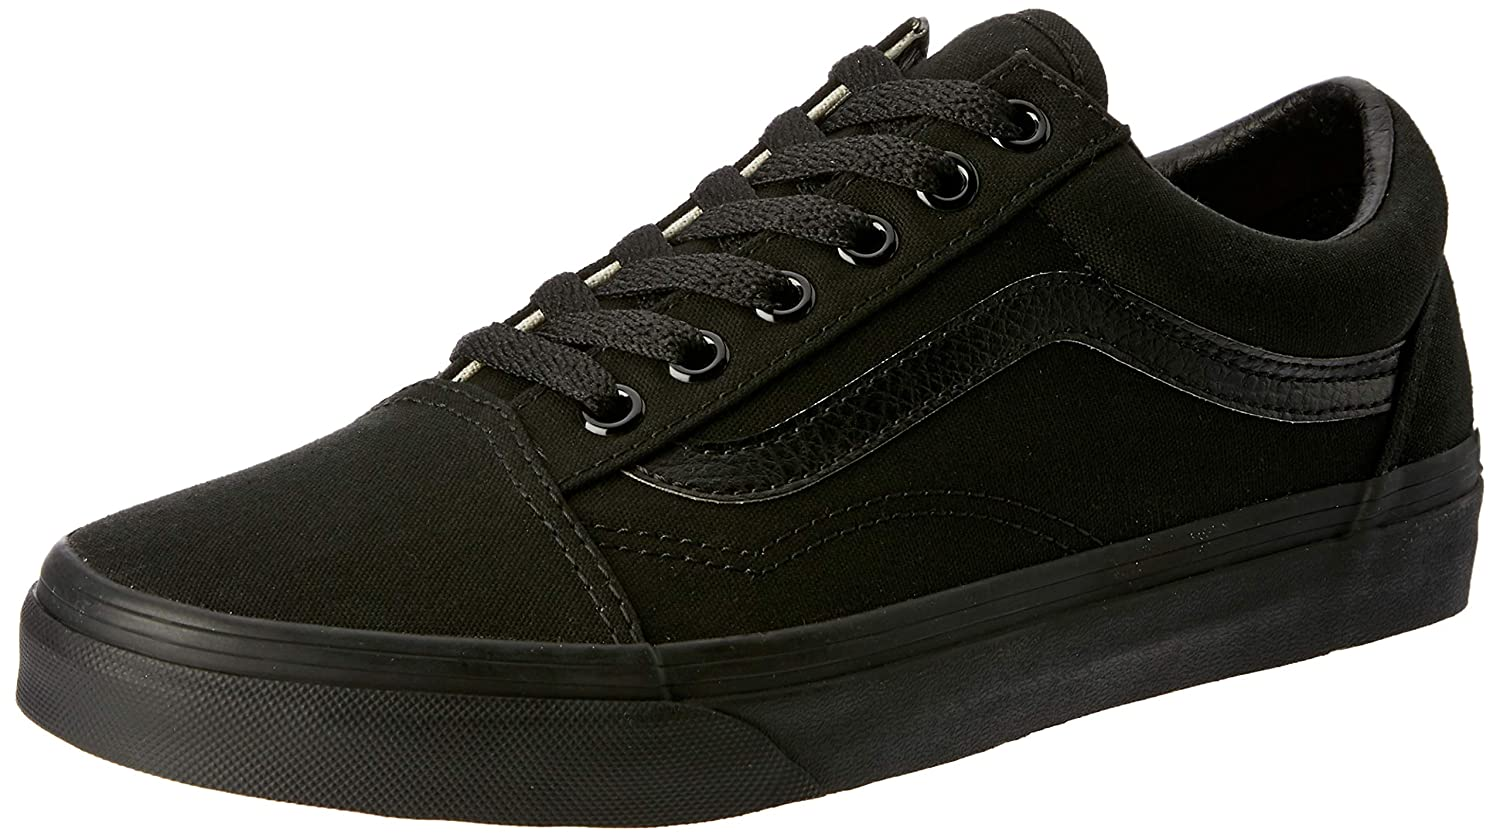 50-70%off buy top-rated genuine Vans Men's Old Skool Skate Shoes 5.5 (Black/Black)